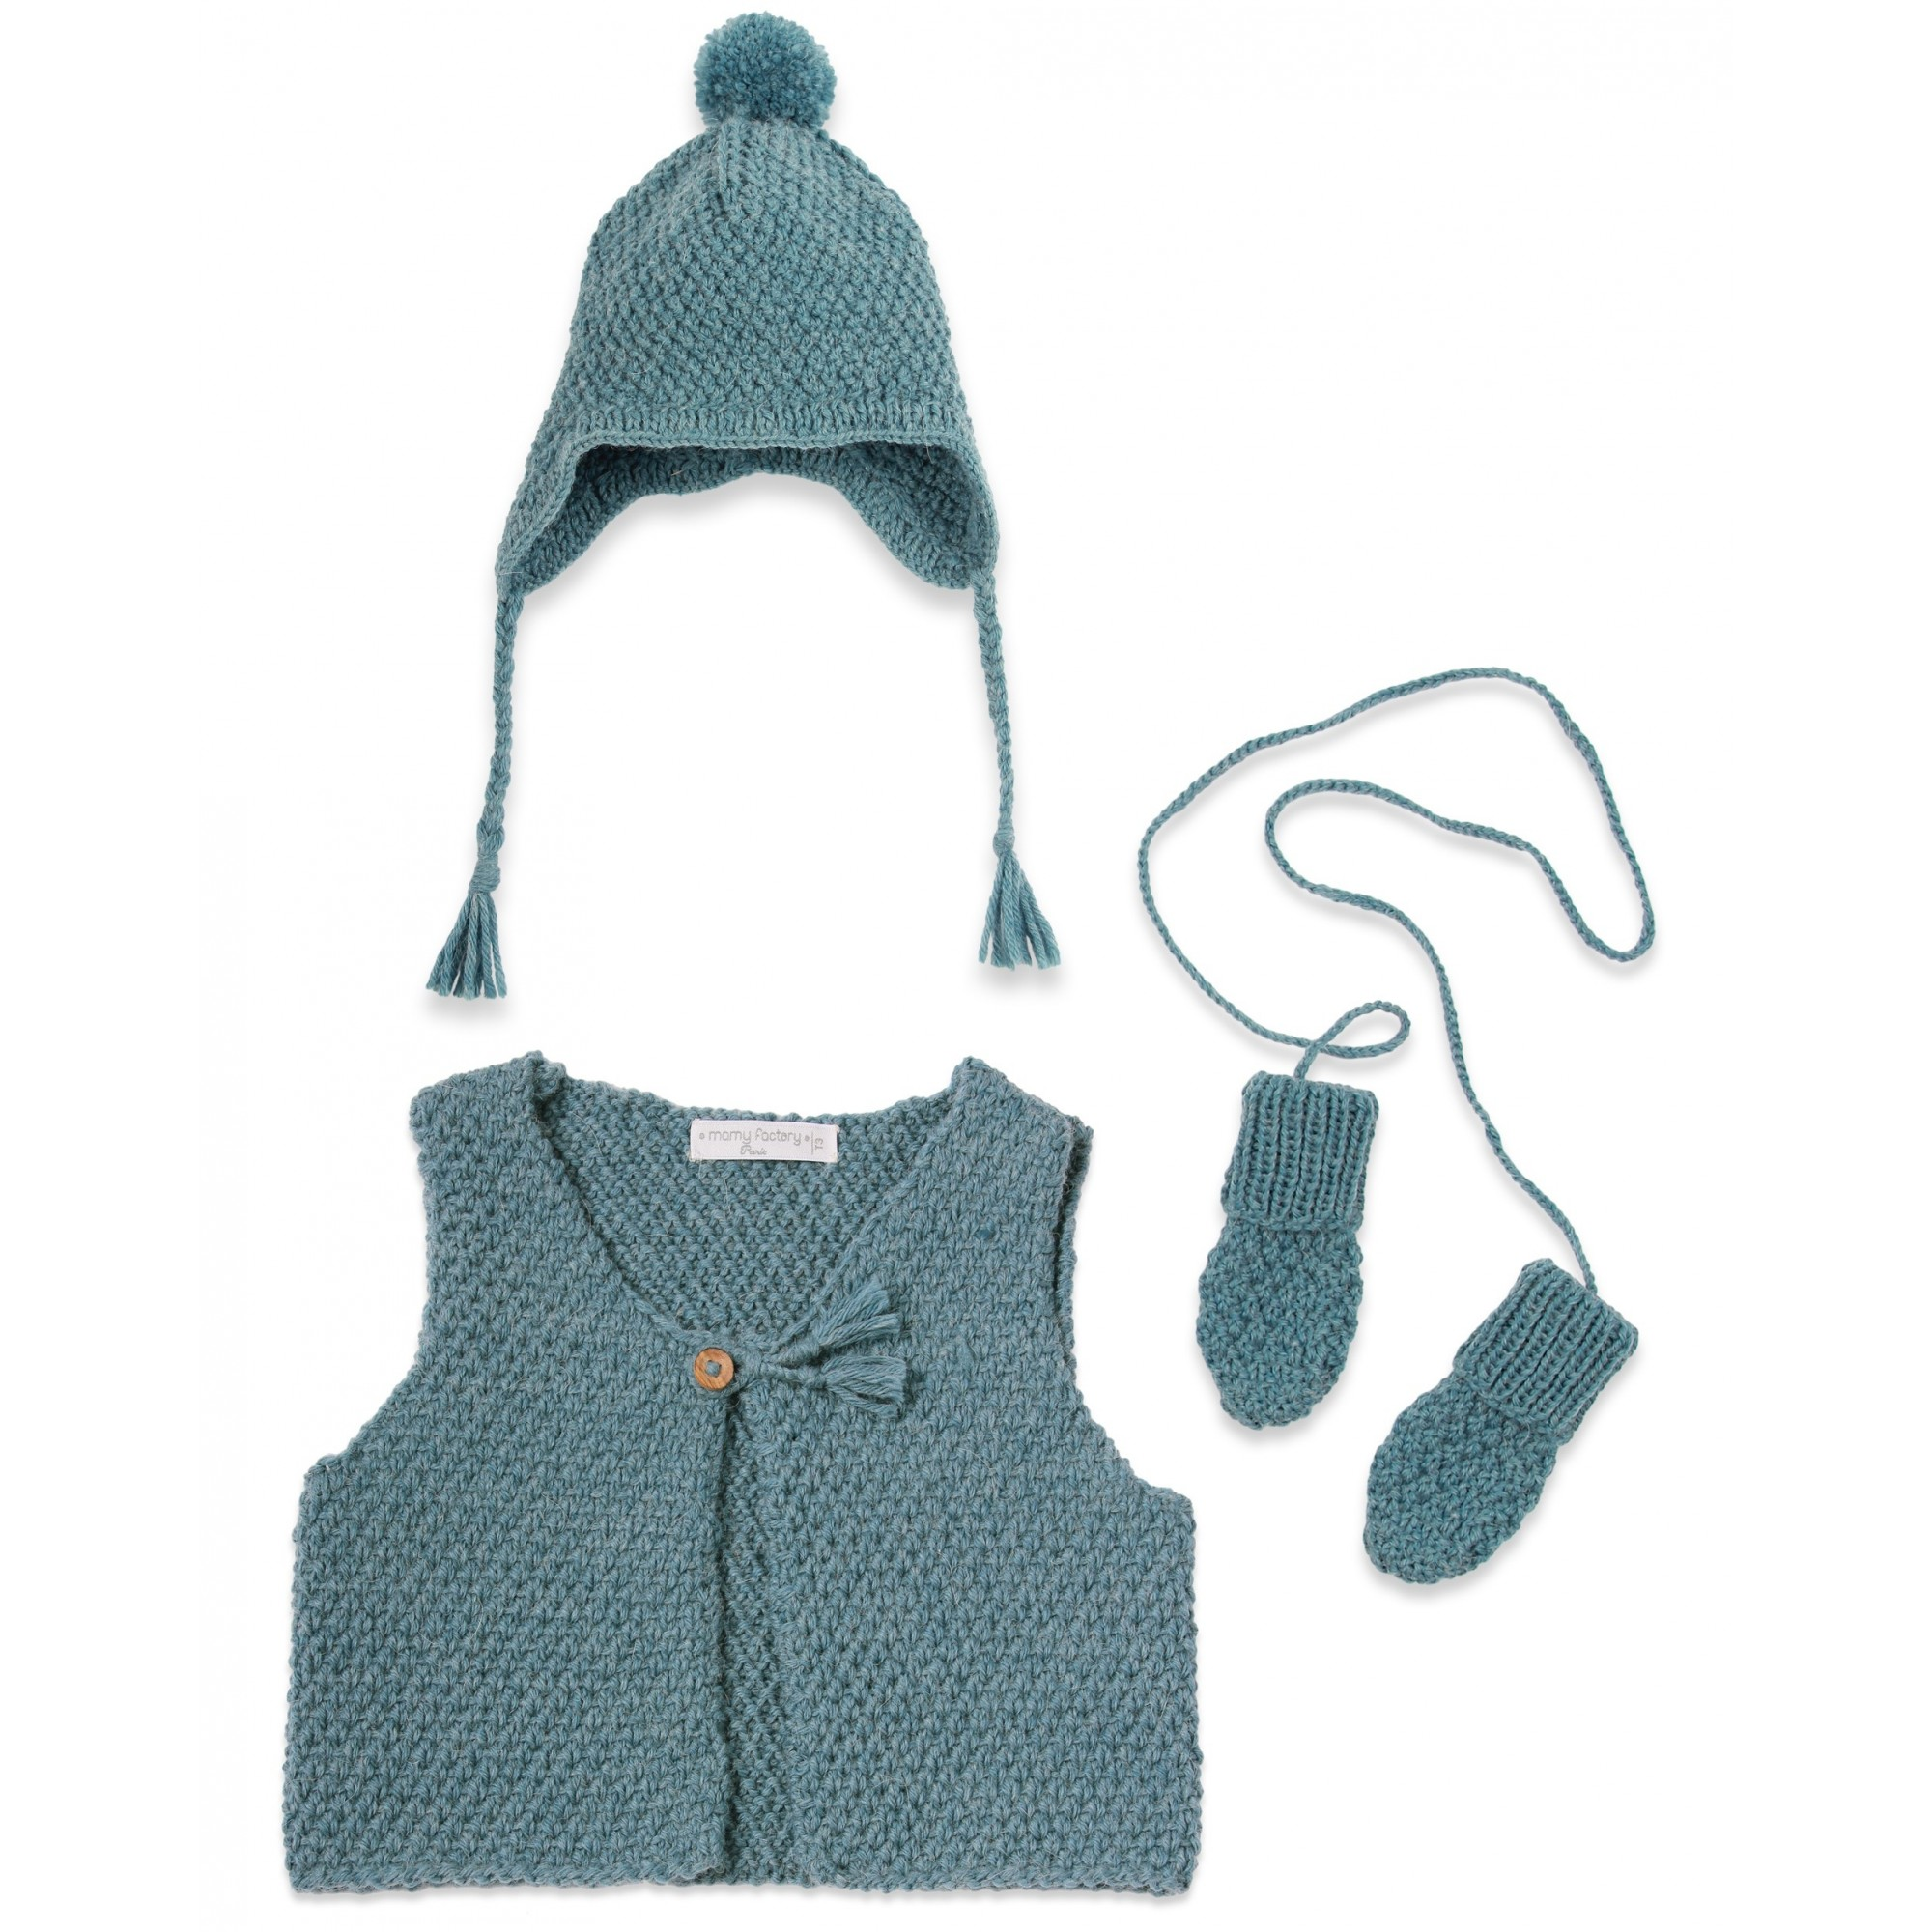 Petrol blue baby sheperd vest, mittens and cap made from wool and alpaca with wood buttons